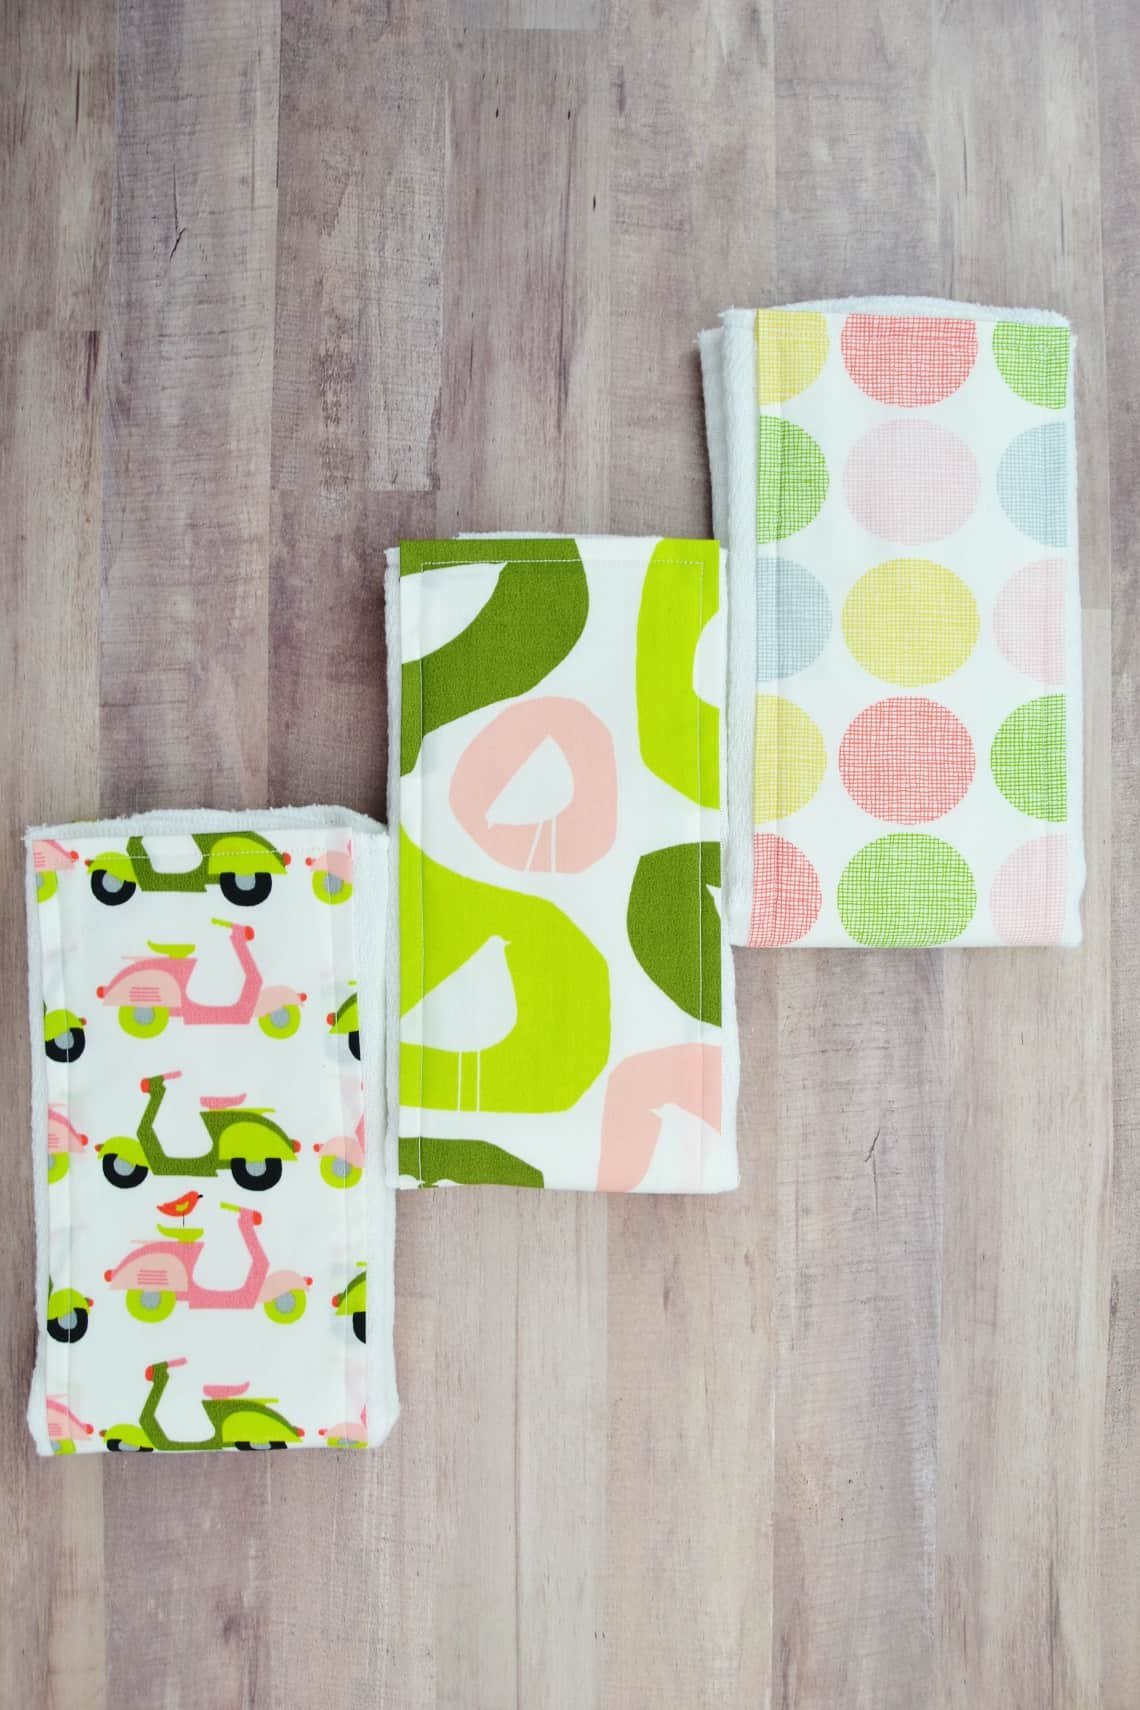 How to Make a Burp Cloth from a Diaper- Follow this tutorial for how to make a burp cloth very quickly by adorning a cloth diaper. #howtomakeaburpcloth #diyburpcloth